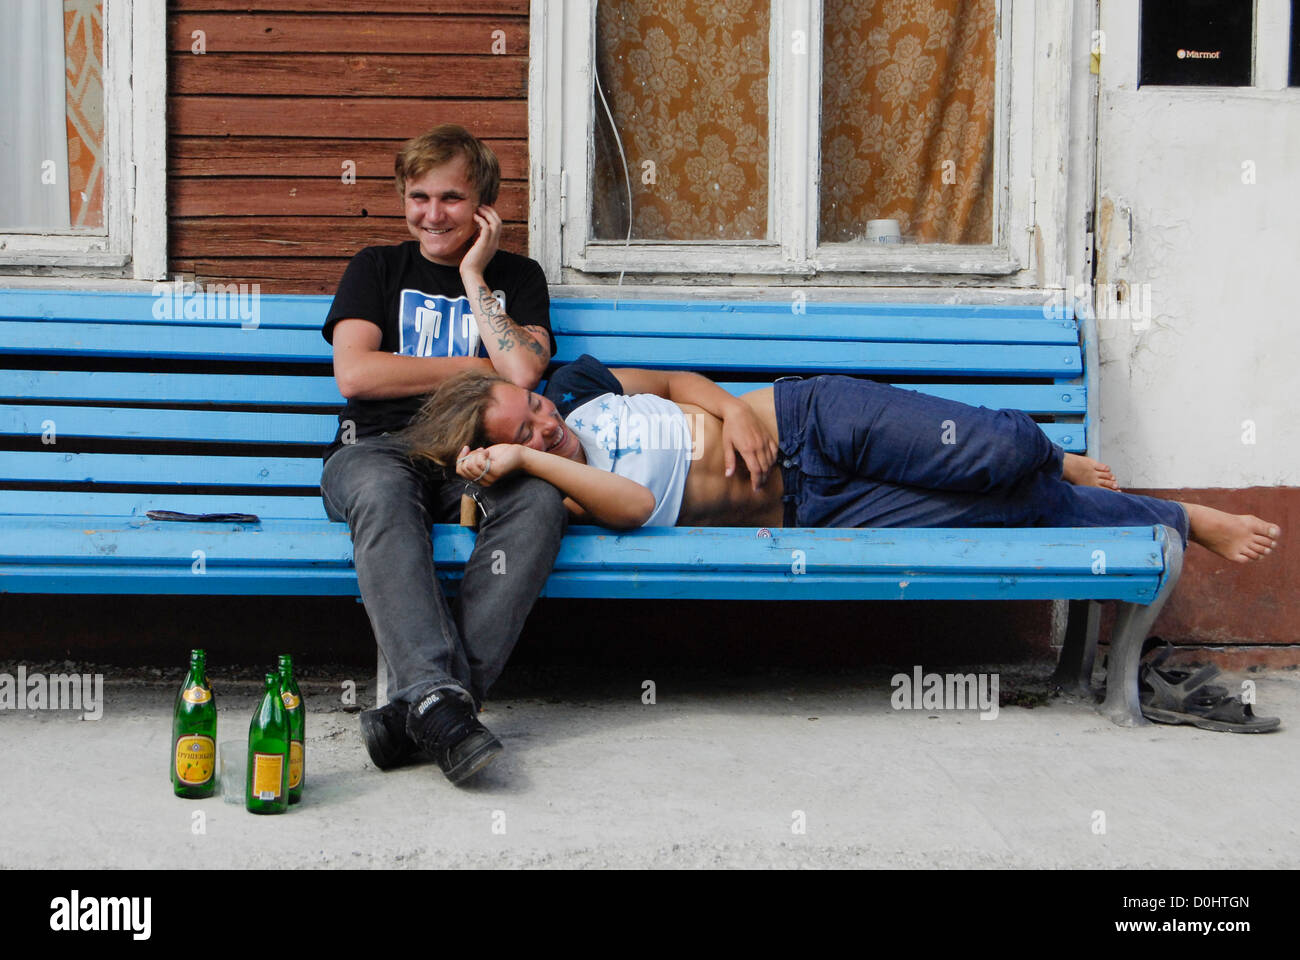 young couple mountaineer fun together beer bench romantic - Stock Image